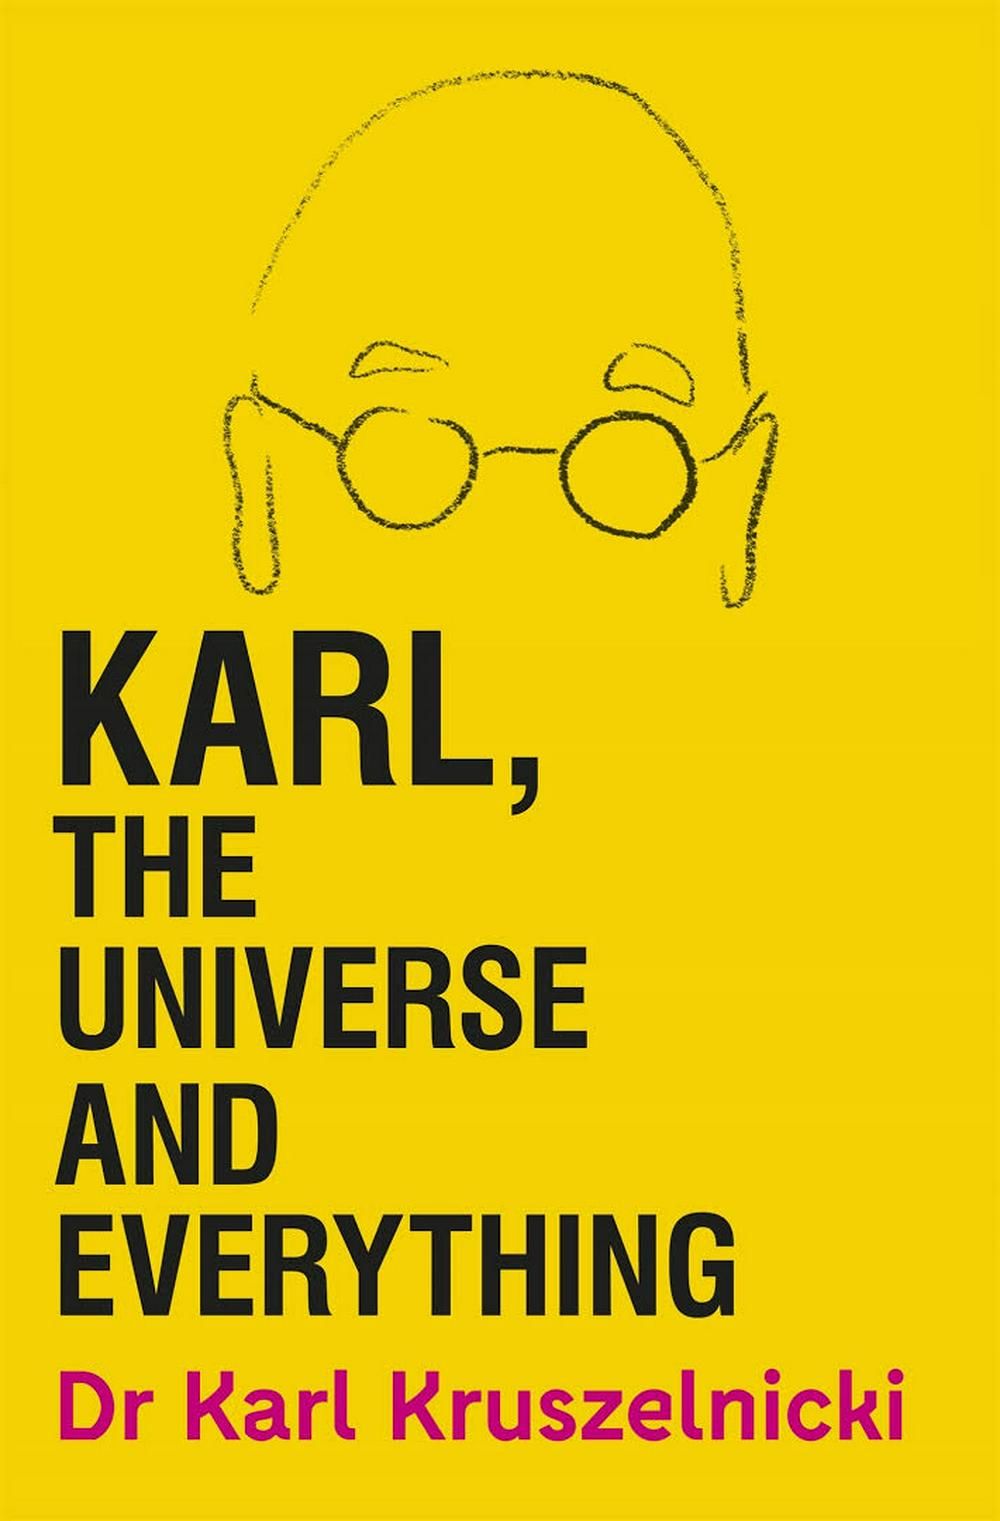 Karl, the Universe and Everything by Dr Karl Kruszelnicki, ISBN: 9781925481327